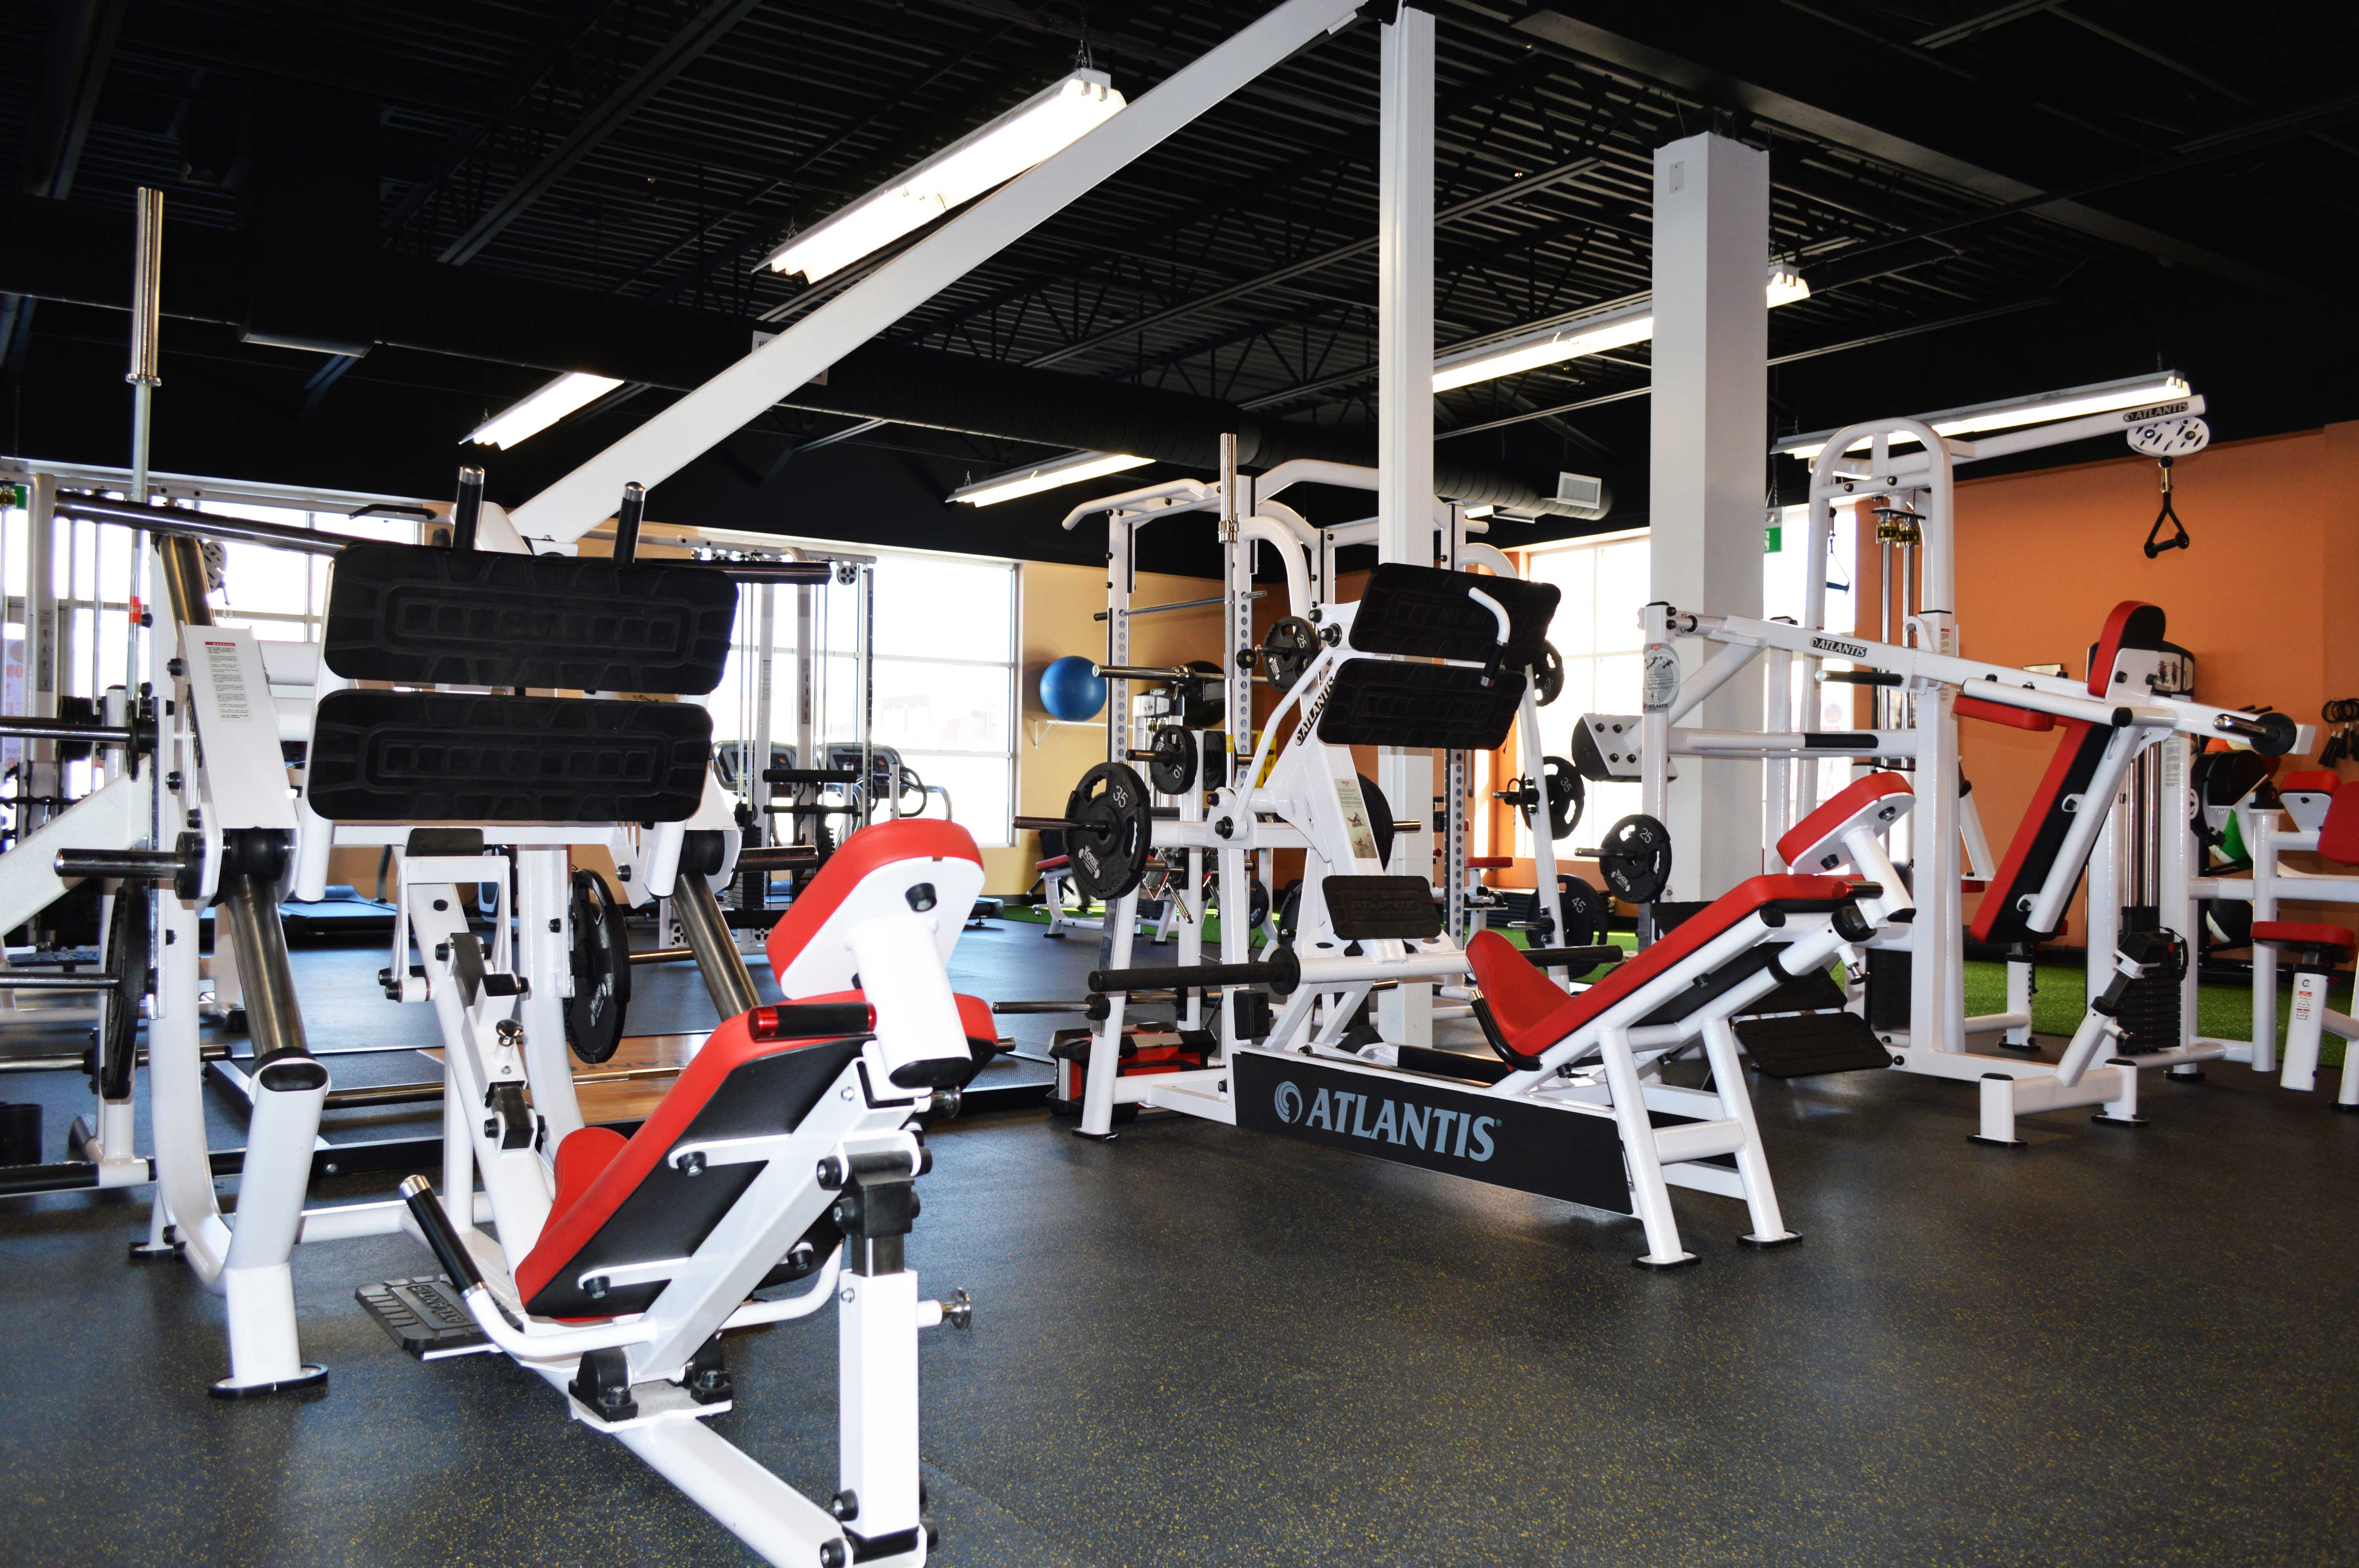 NLC-Fitness-Centre-Guelph-Facility-13 Facility